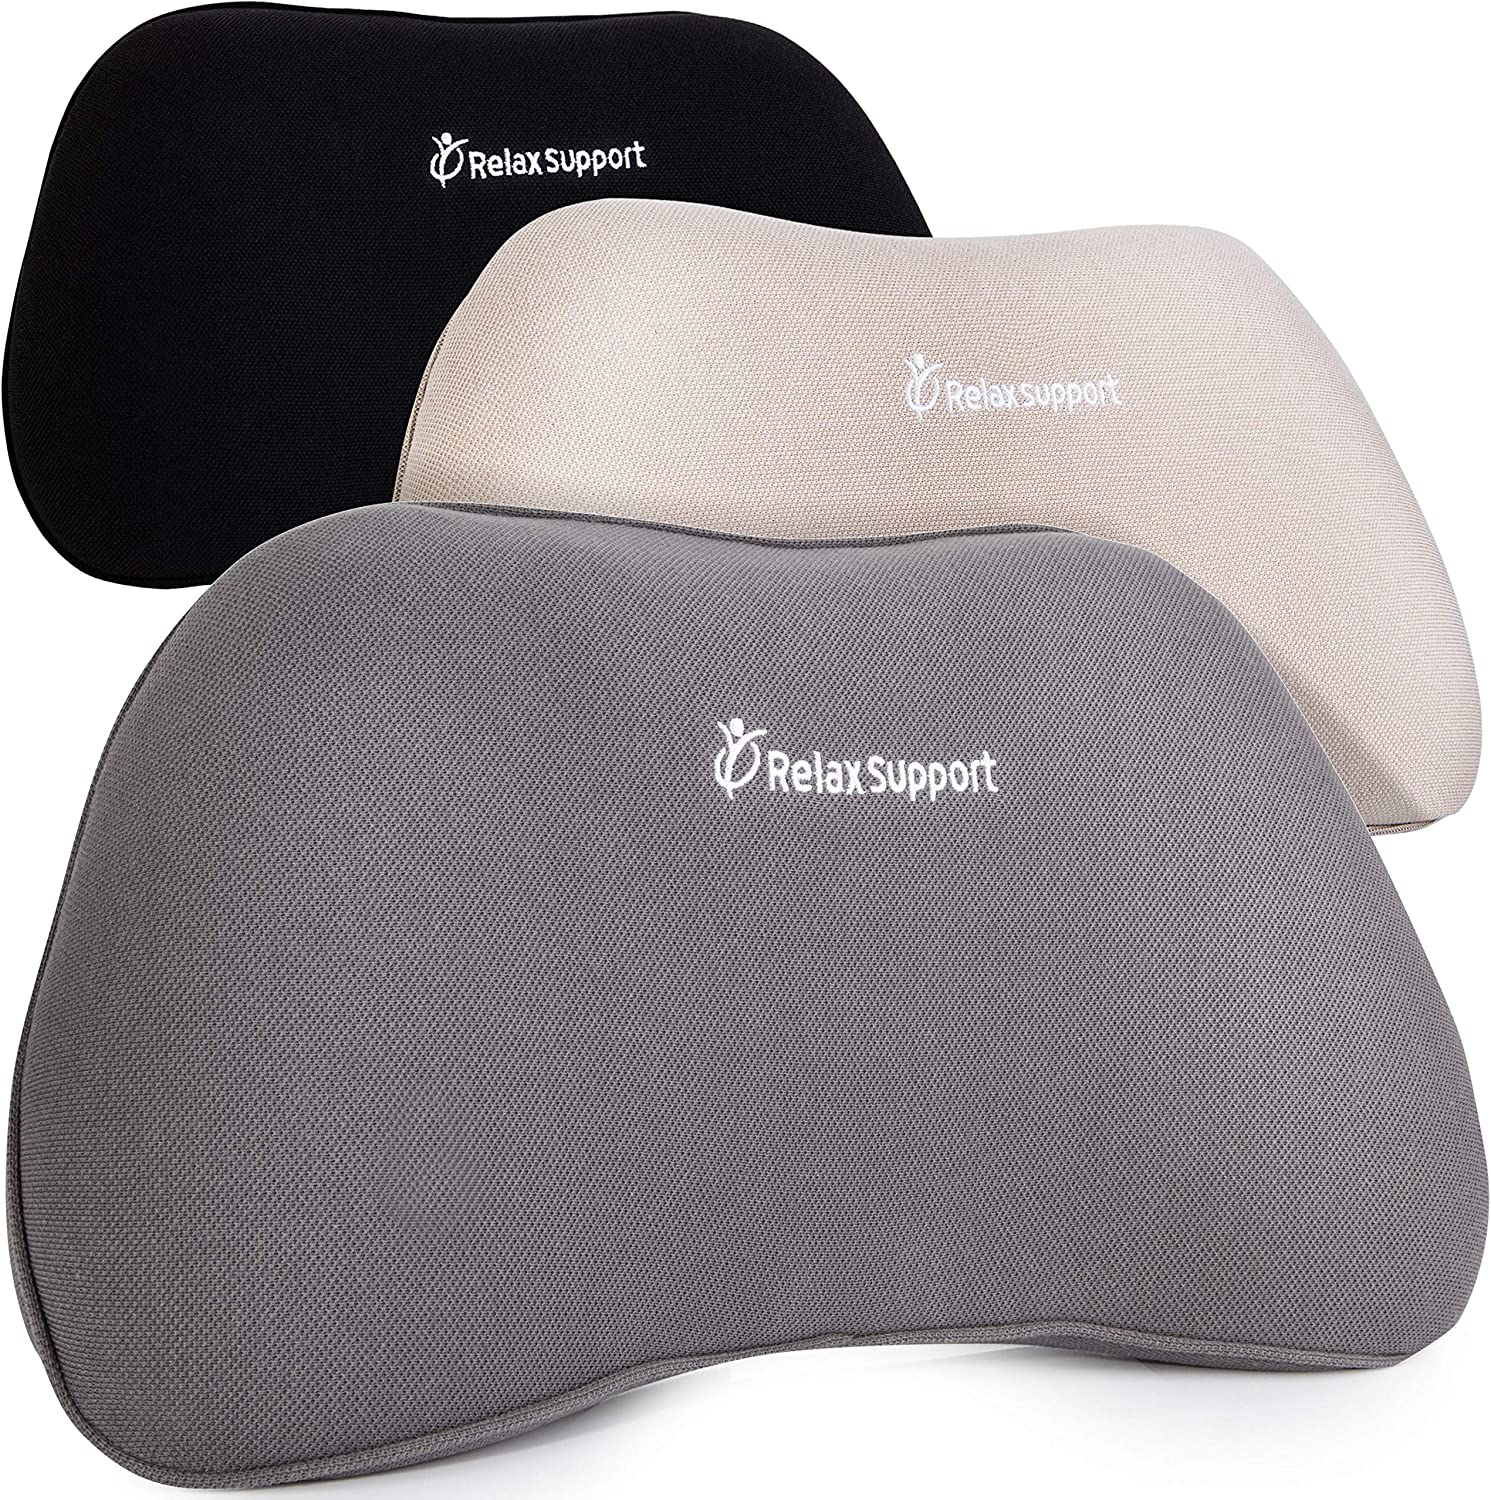 RS1 Back Support Pillow by Relax Support – Lumbar Pillow Upper and Lower Back for Chair Back Pain Uses ArcContour Special Patented Technology Has Unique Lateral Convex Shape for a Pain Free Back: Home & Kitchen